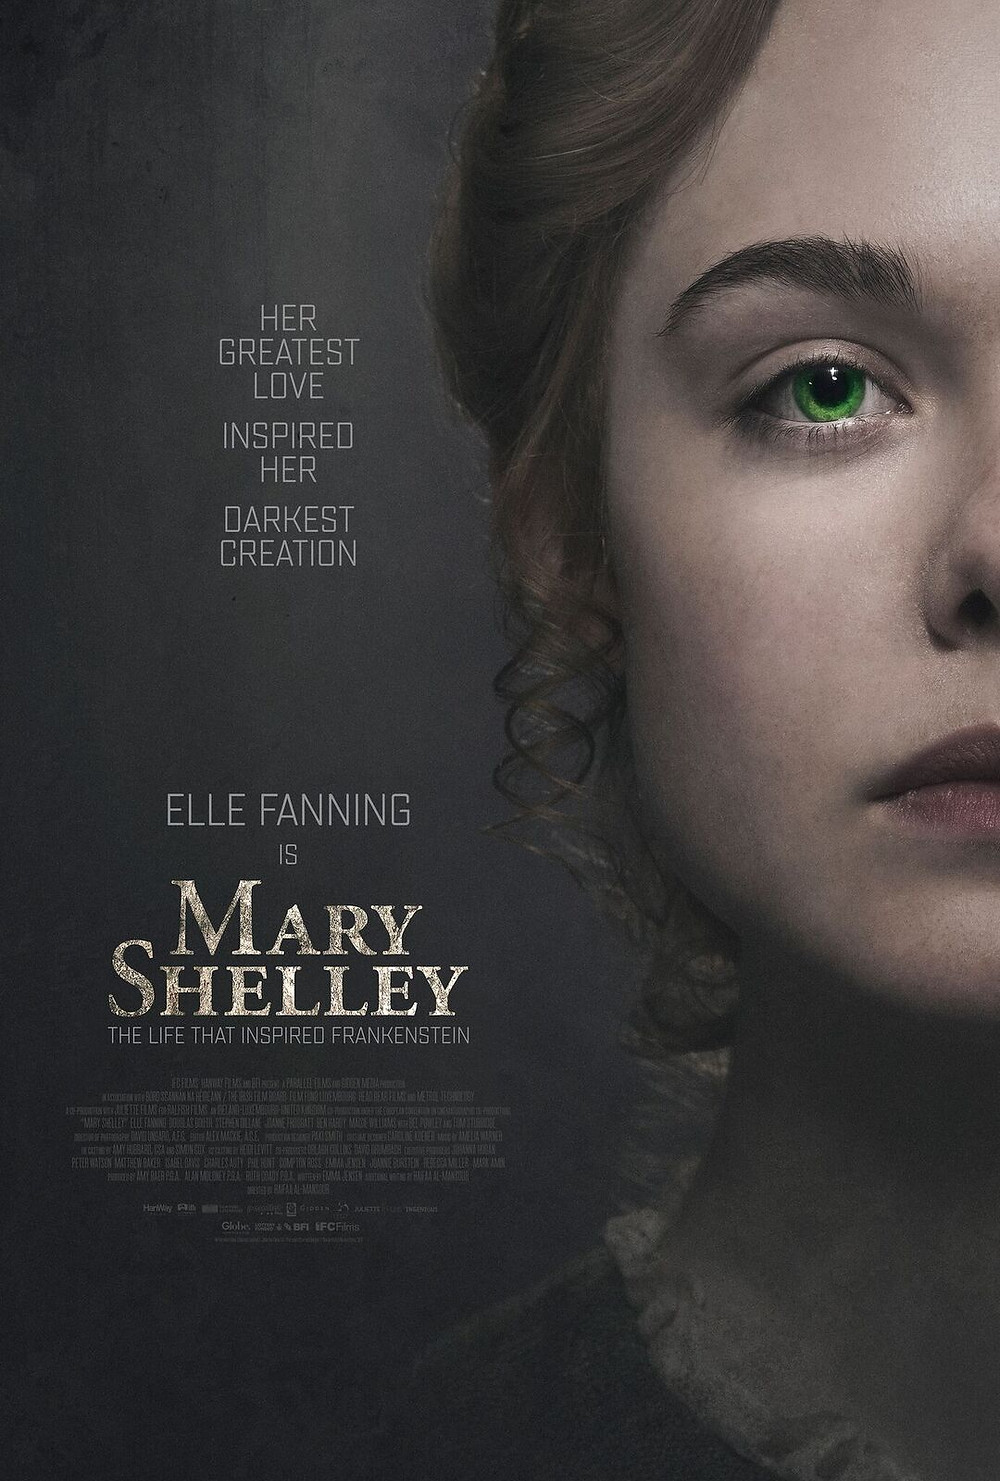 Mary Shelley coming out May 25th!